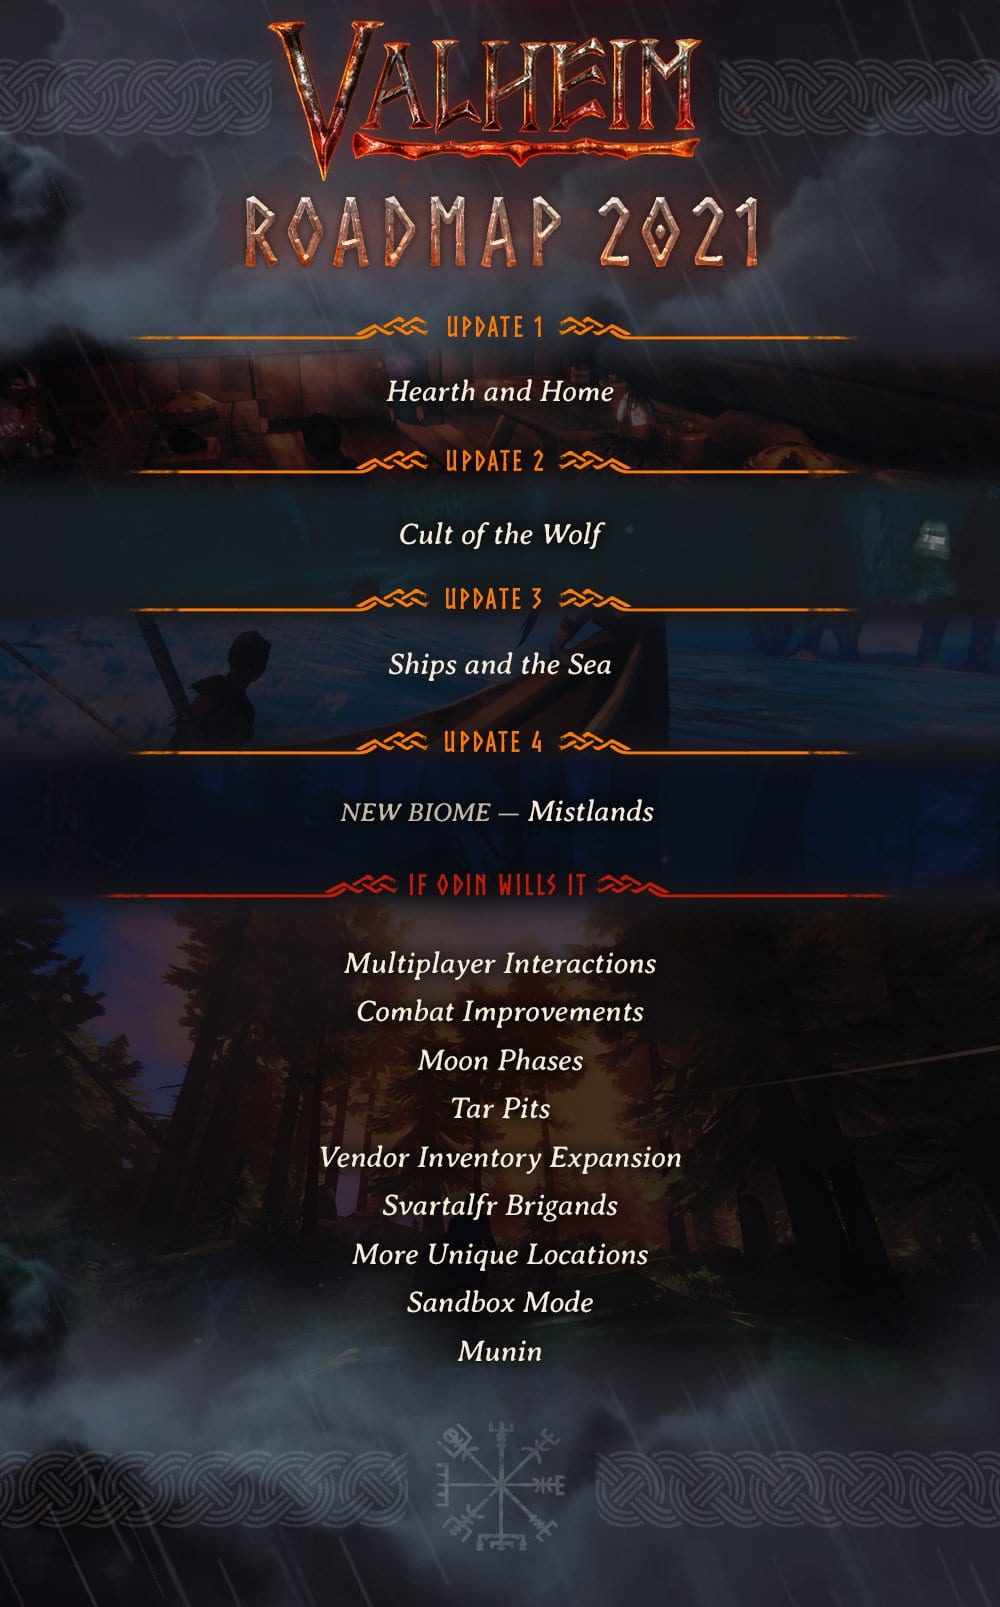 Valheim Wikinger-Survivalspiel Steam Early-Access Roadmap